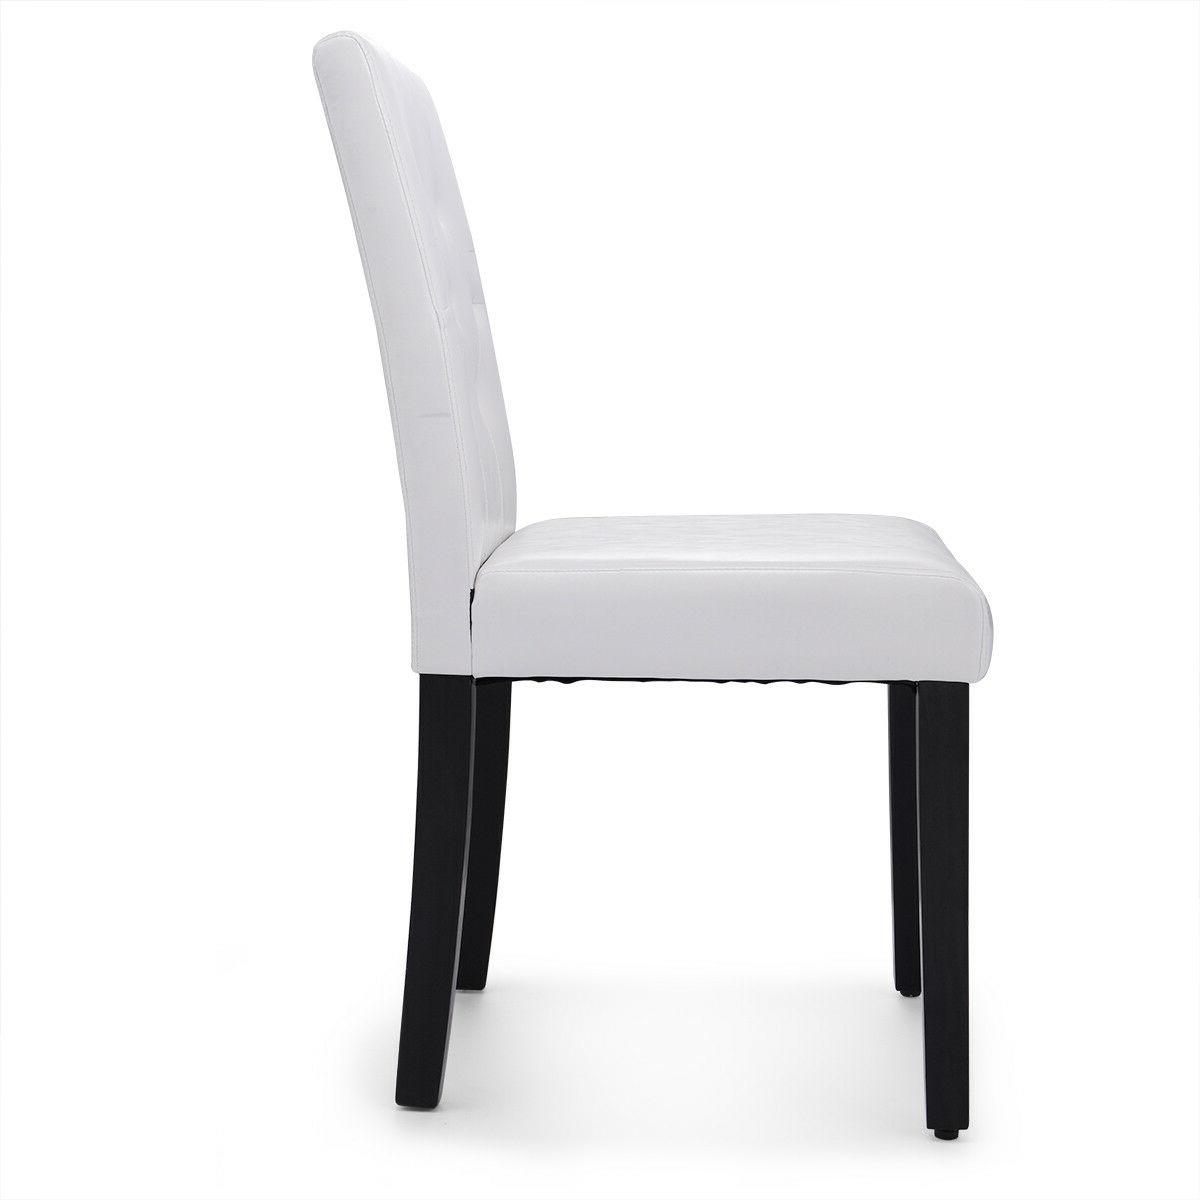 2/4/6Pcs Dining Chair Kitchen Pine White Leather